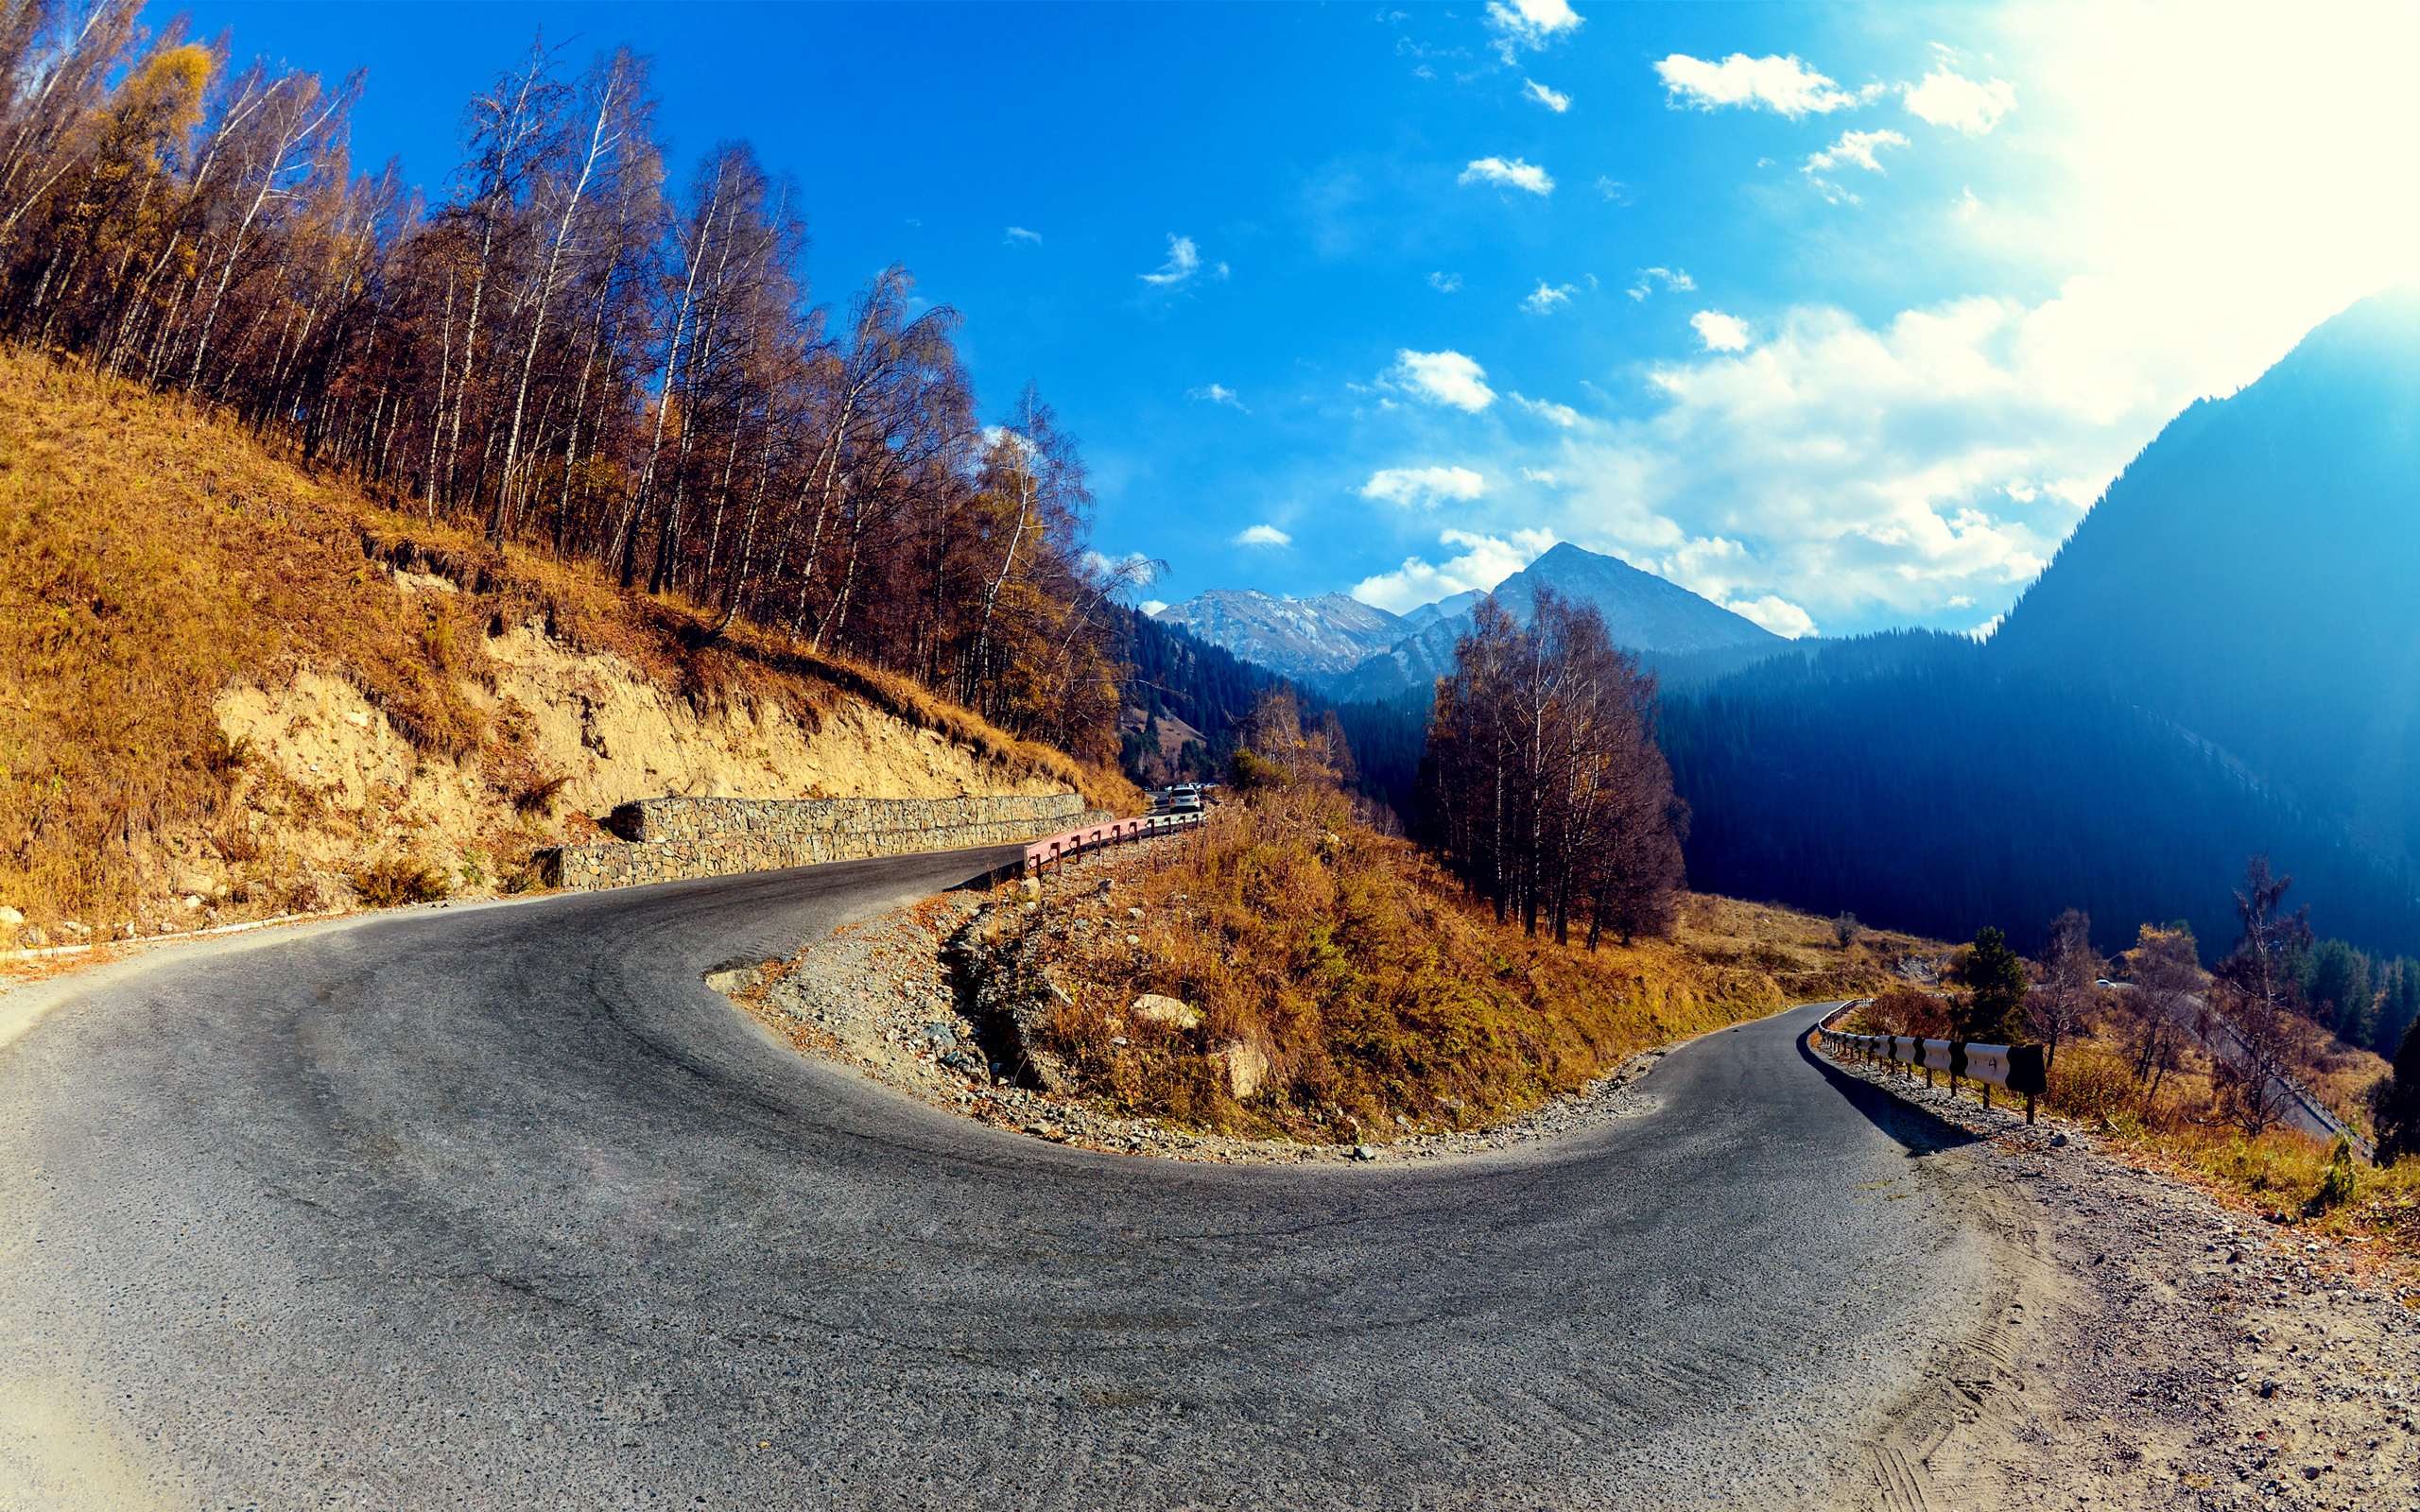 HD Wallpapers Mountain Hairpin Curve